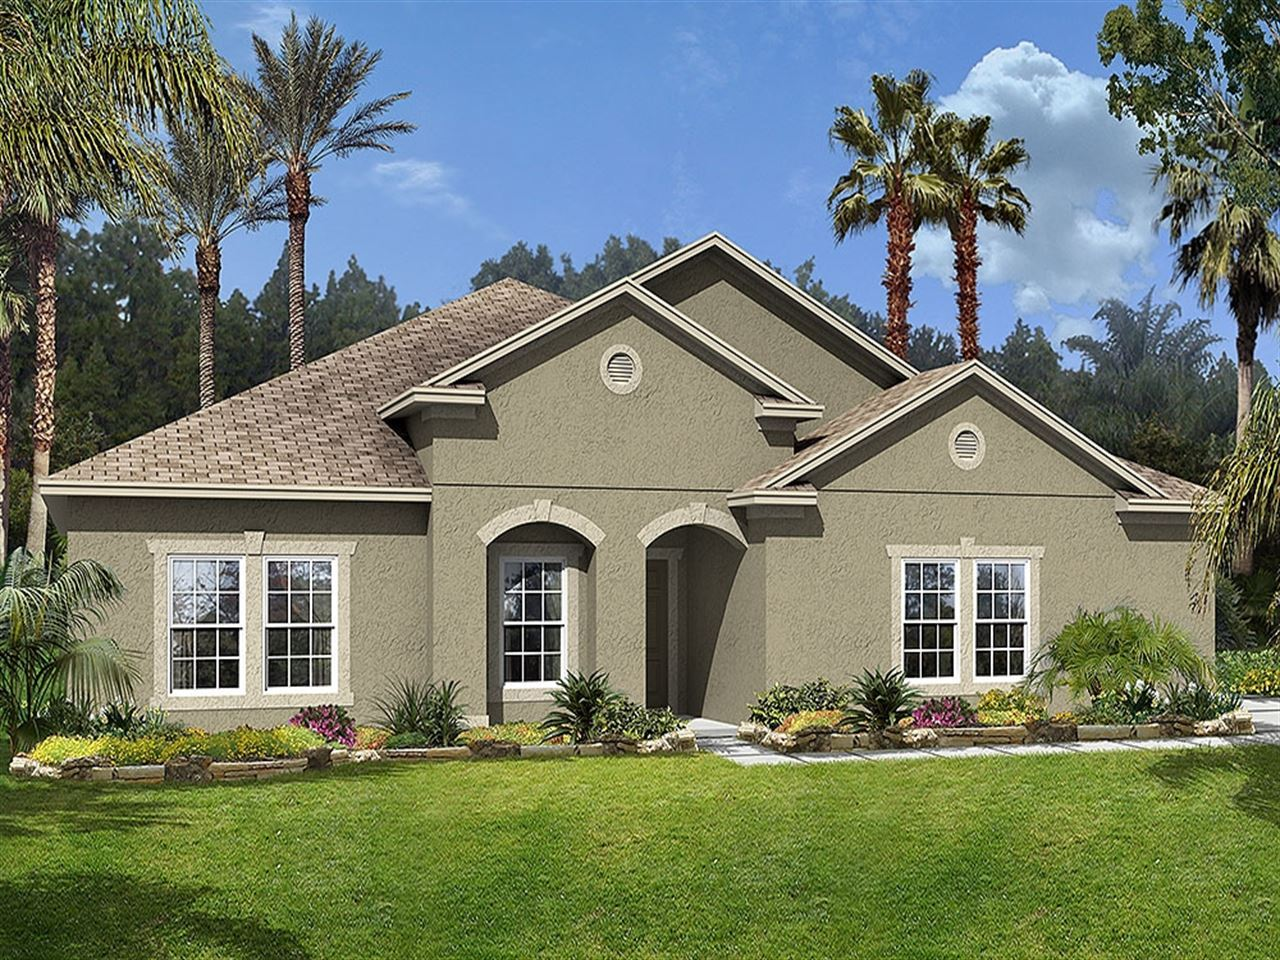 Ryland homes brookhaven floor plan home design and style for Ryland homes